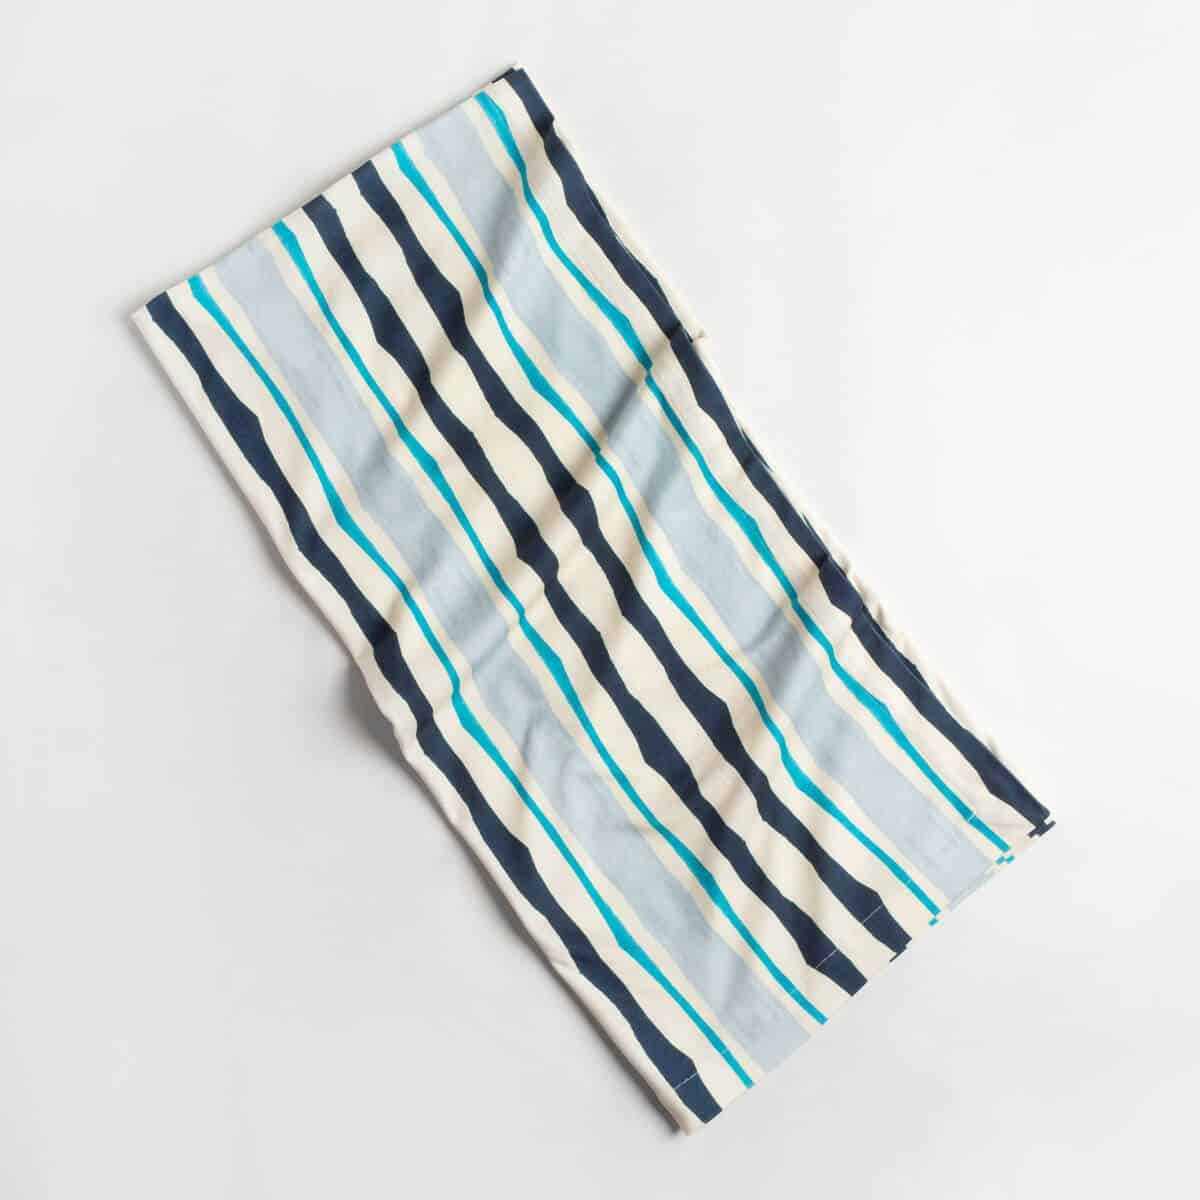 Luxury organic navy and blue mirrored watercolor stripe knit throw